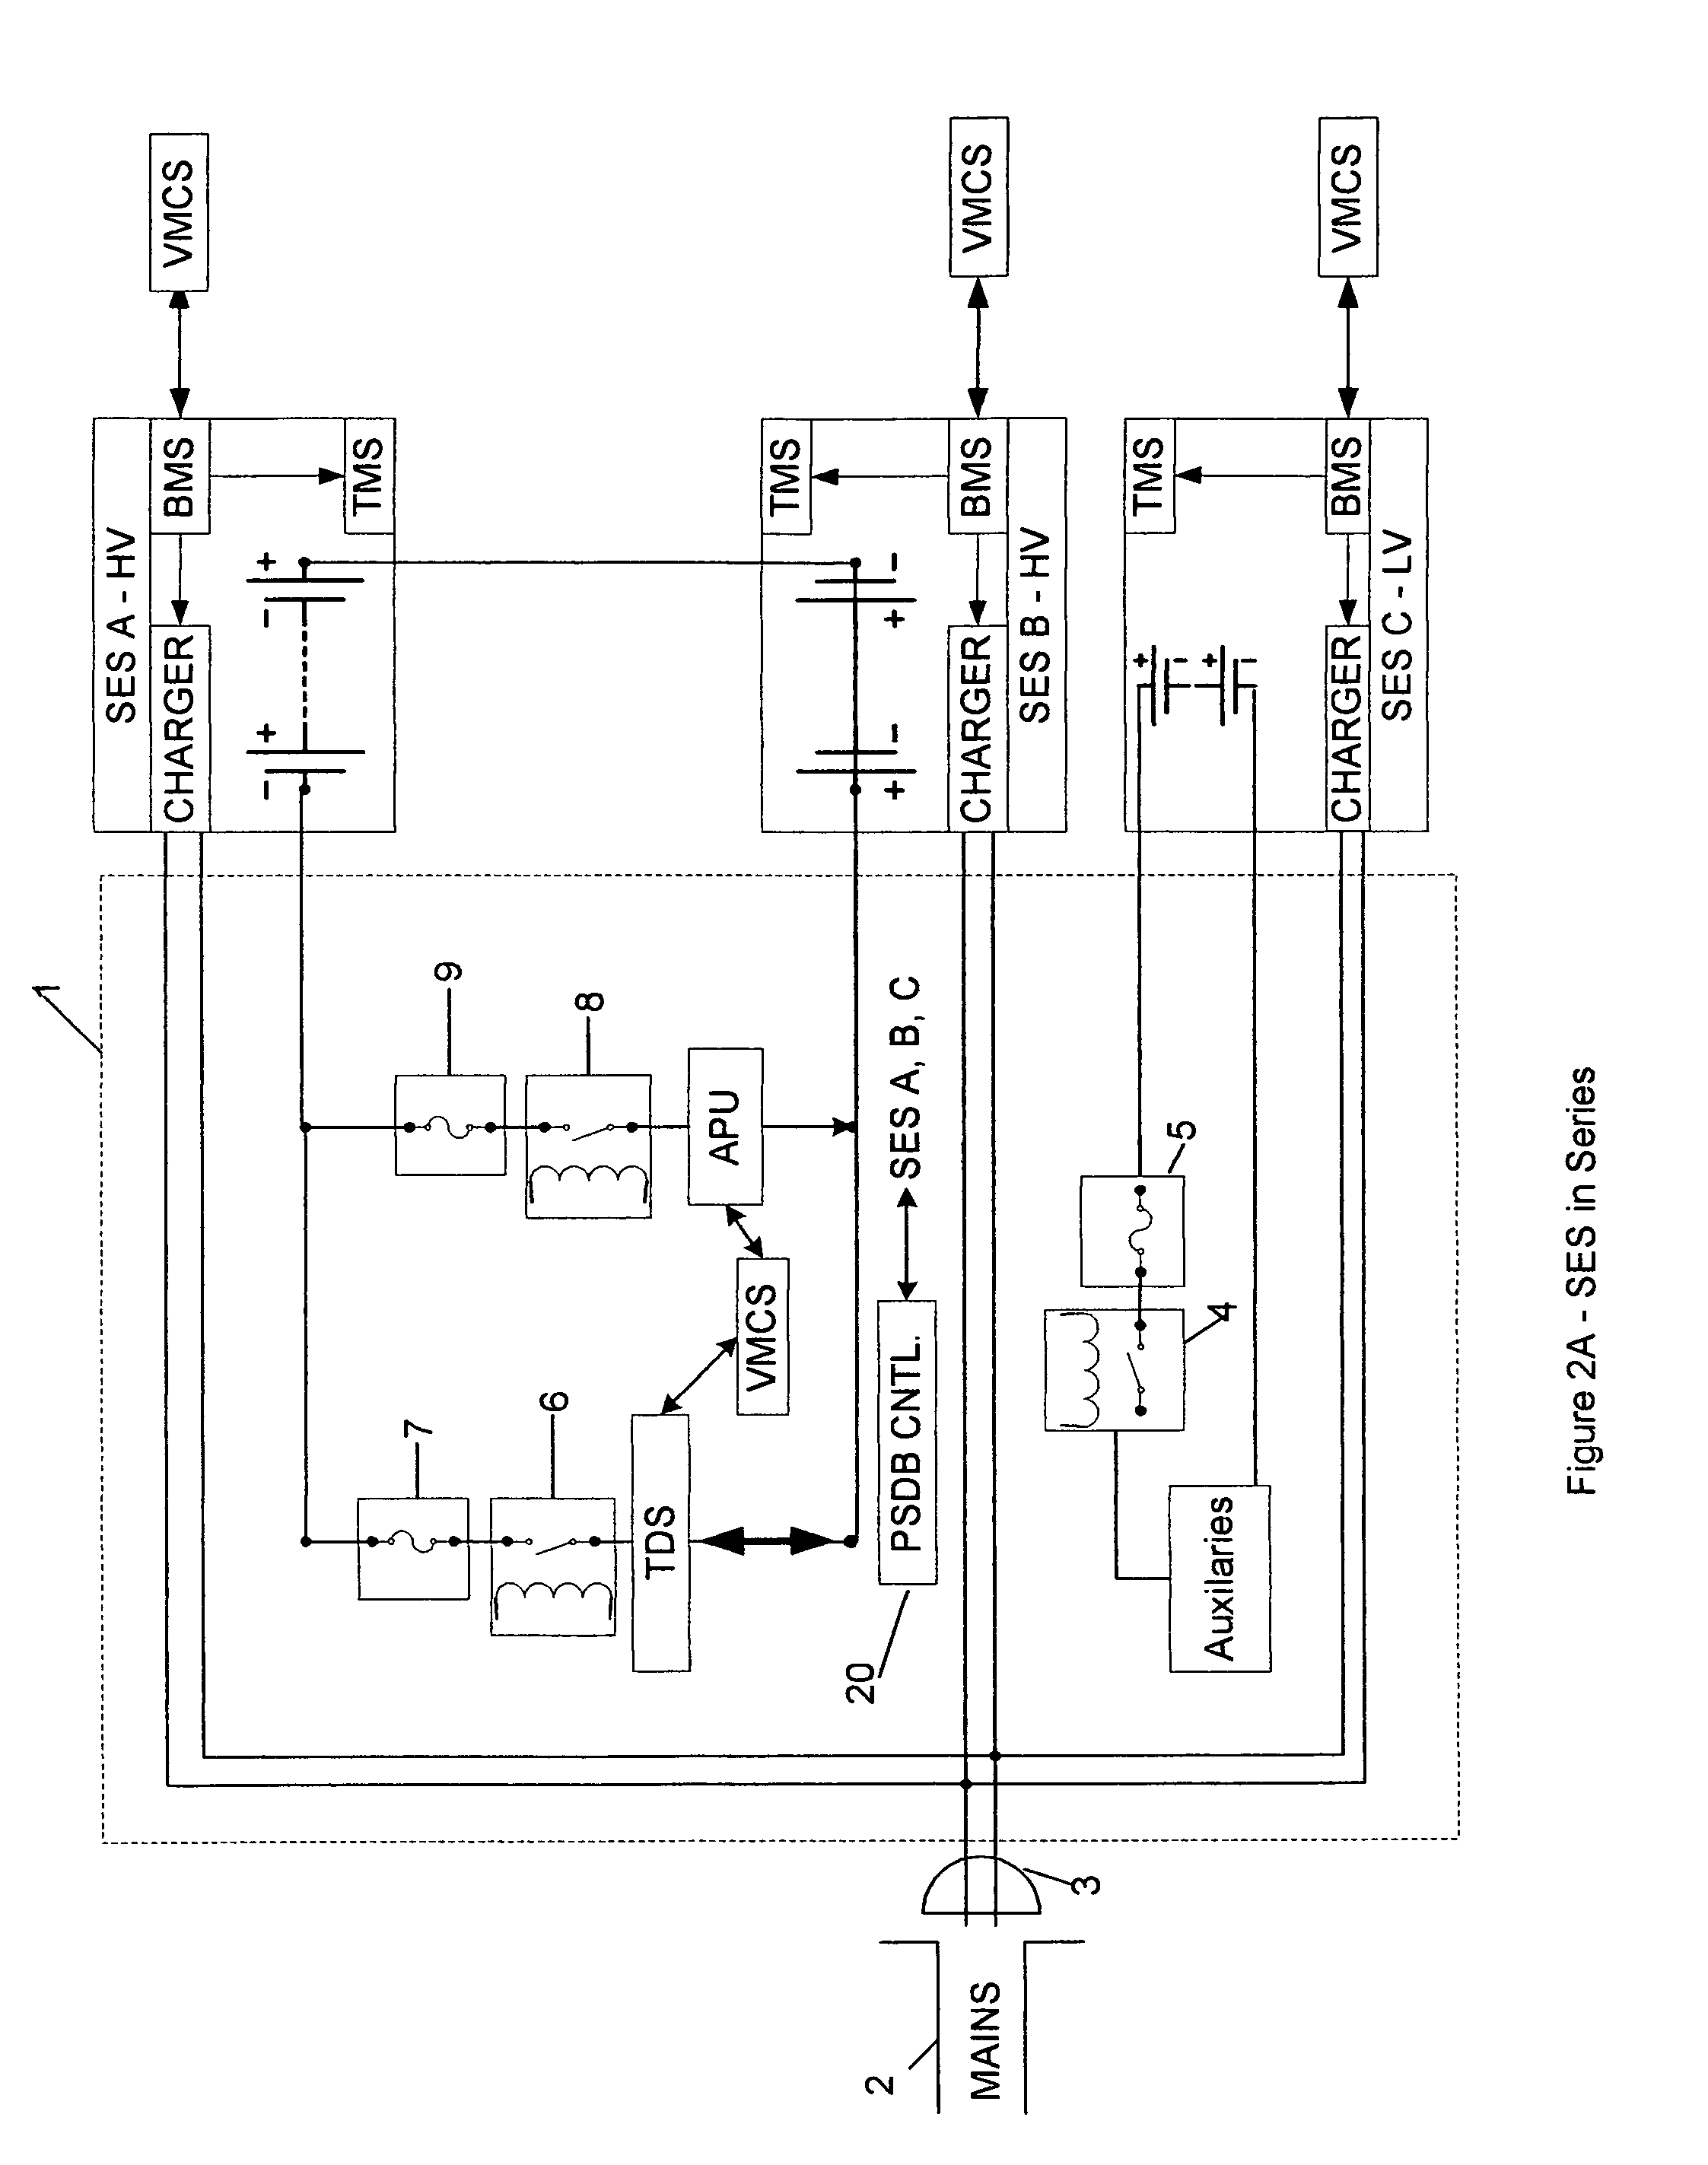 Bluebird Bus Wiring Schematics 30 Diagram Images Free Download Schematic Us07830117 20101109 D00002 Patent Us7830117 Vehicle Charging Monitoring And Control Blue Bird